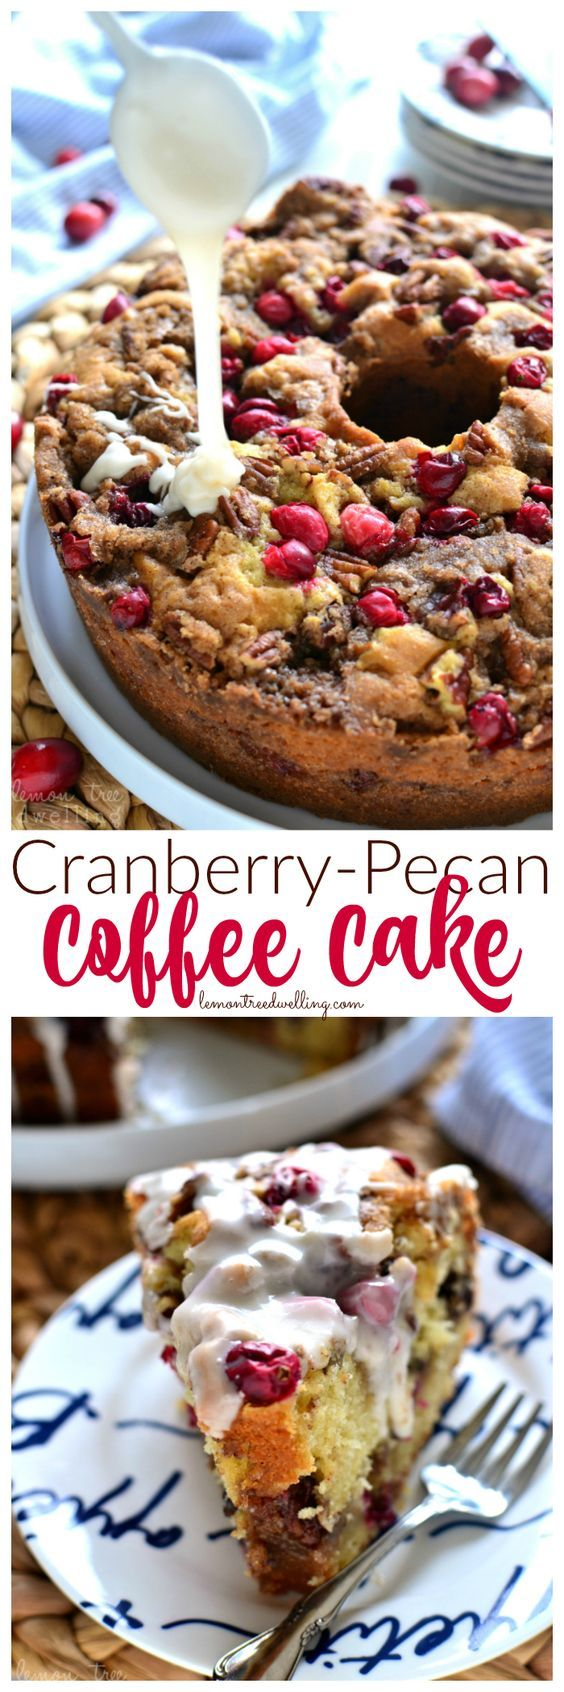 This Cranberry-Pecan Coffee Cake is packed with fresh cranberries, pecans, and brown sugar streusel, then topped with a creamy vanilla glaze